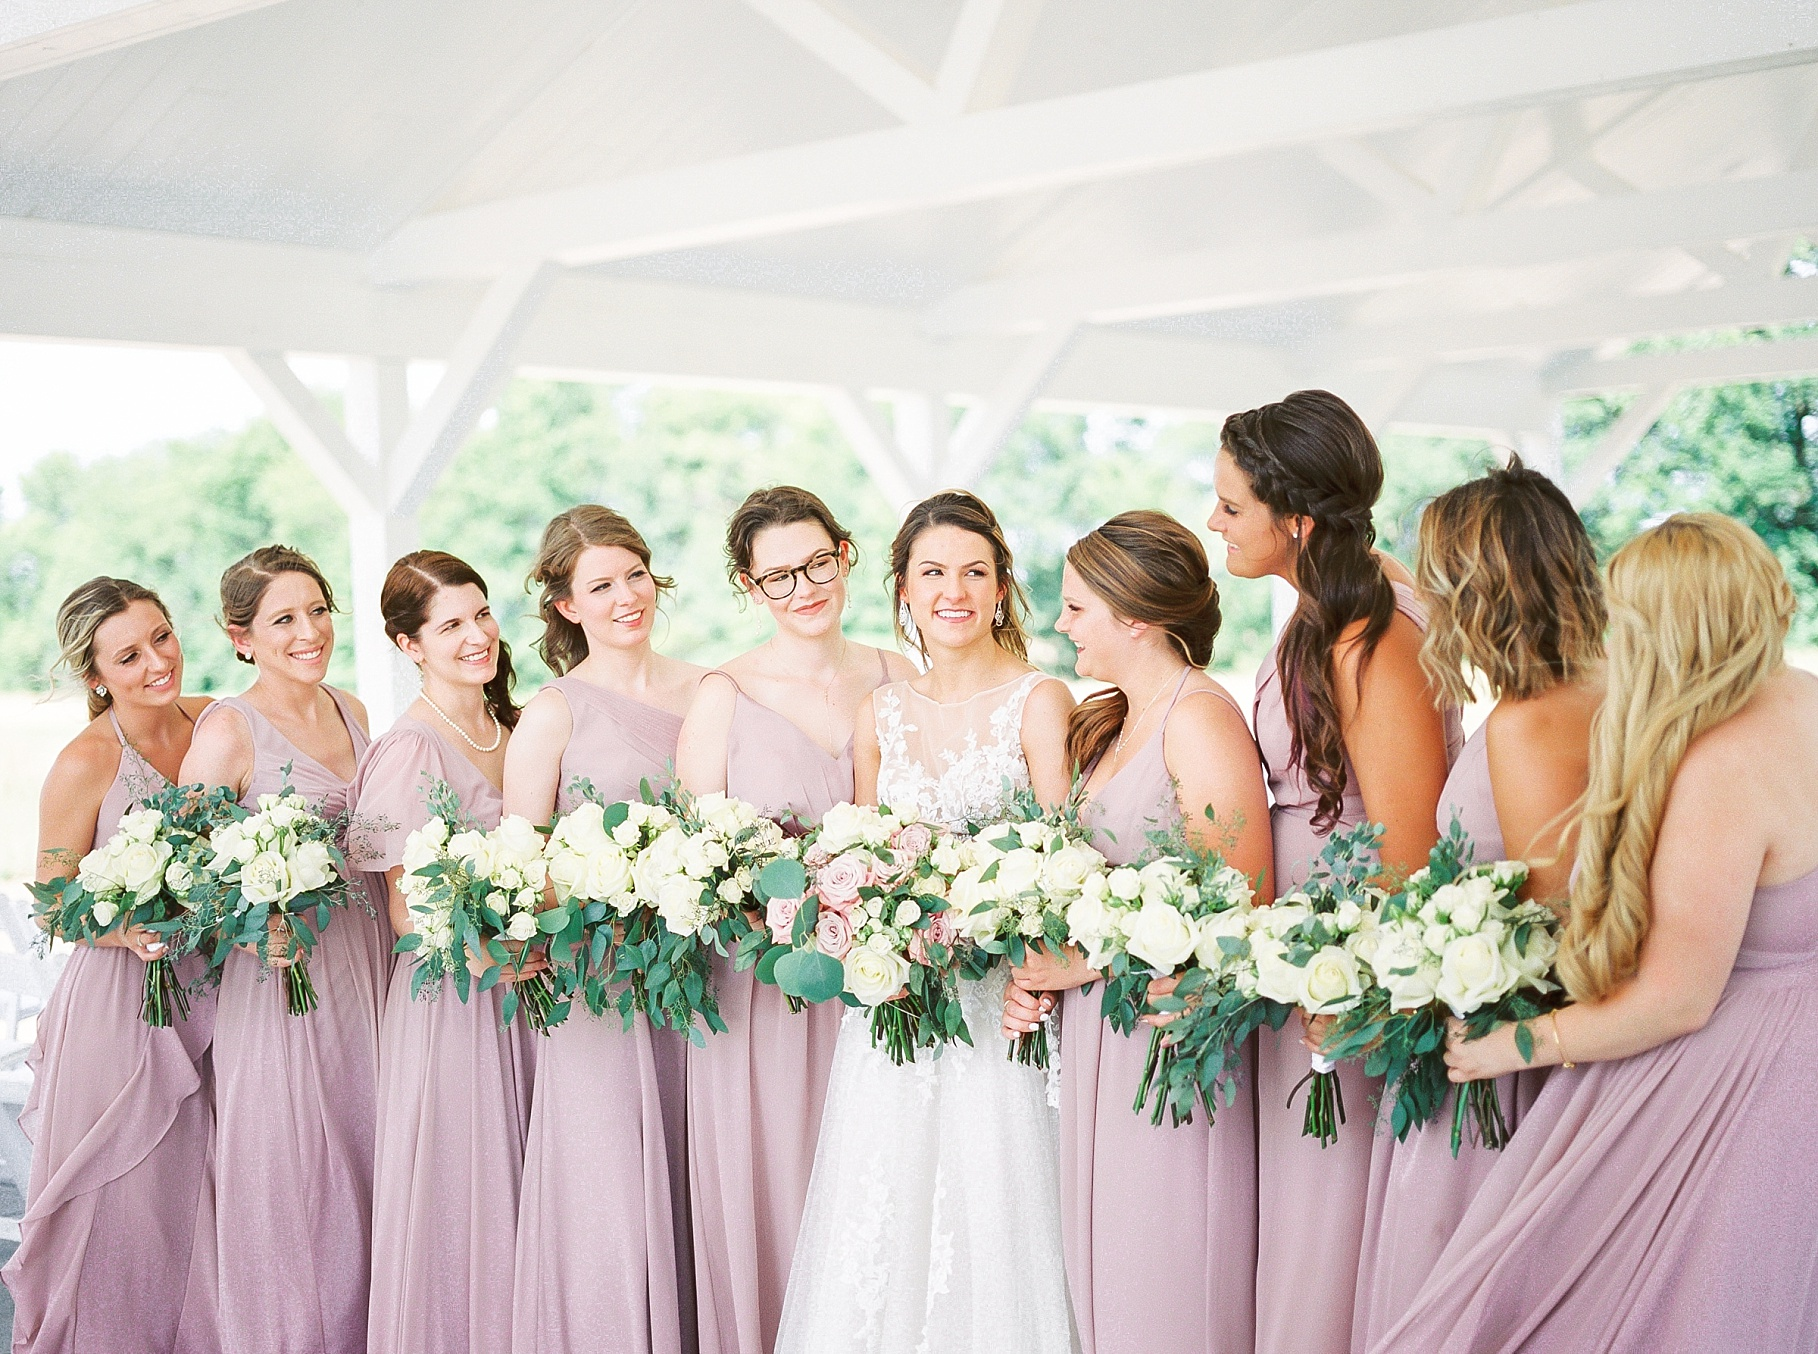 Classic Quartz, White, and Deep Green Wedding at Emerson Fields by Kelsi Kliethermes Photography Best Columbia Missouri and Maui Hawaii Wedding Photographer_0034.jpg